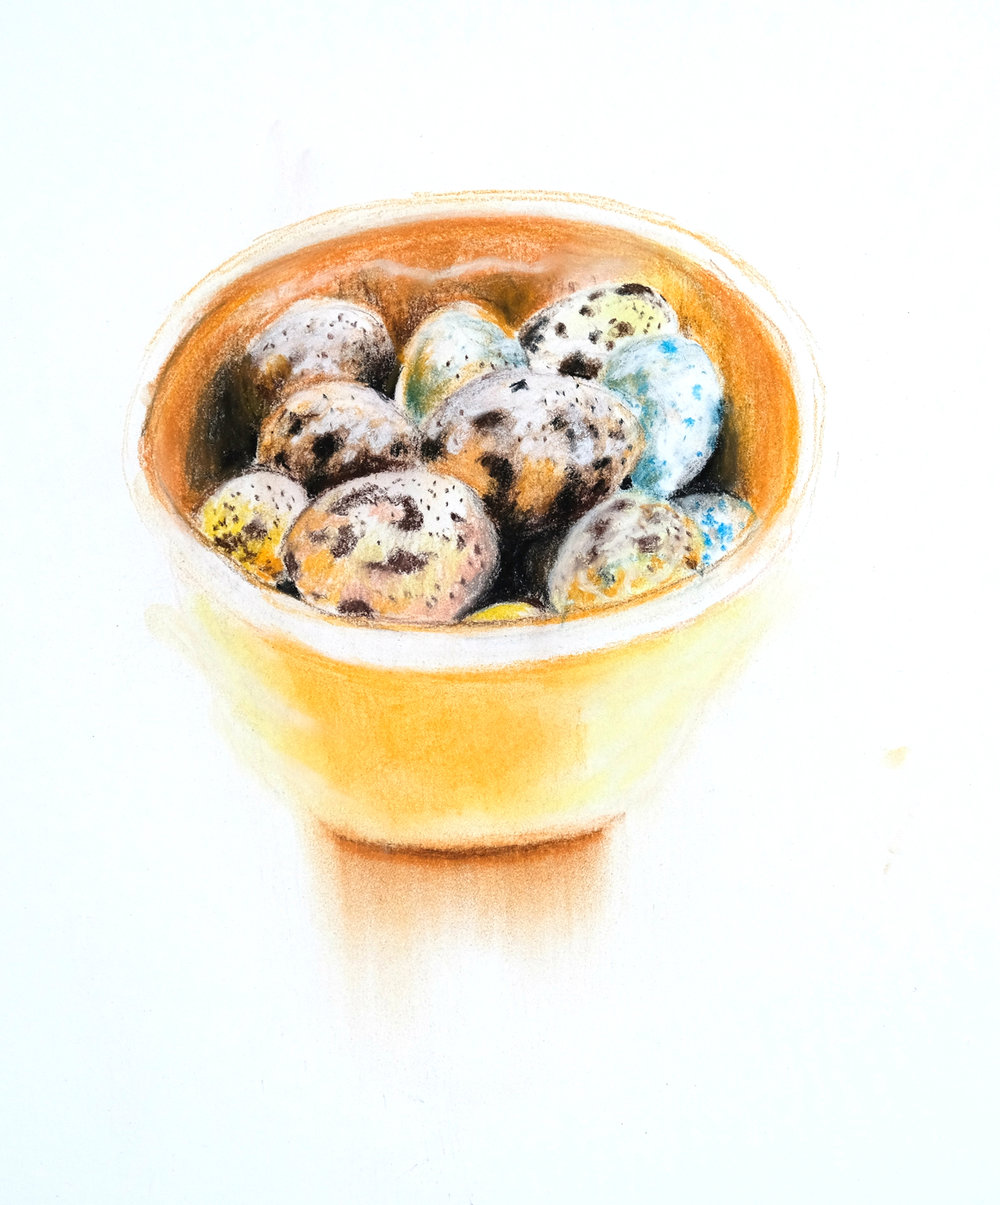 quail eggs, small copy pastle orange and yellow bowl copy.jpg